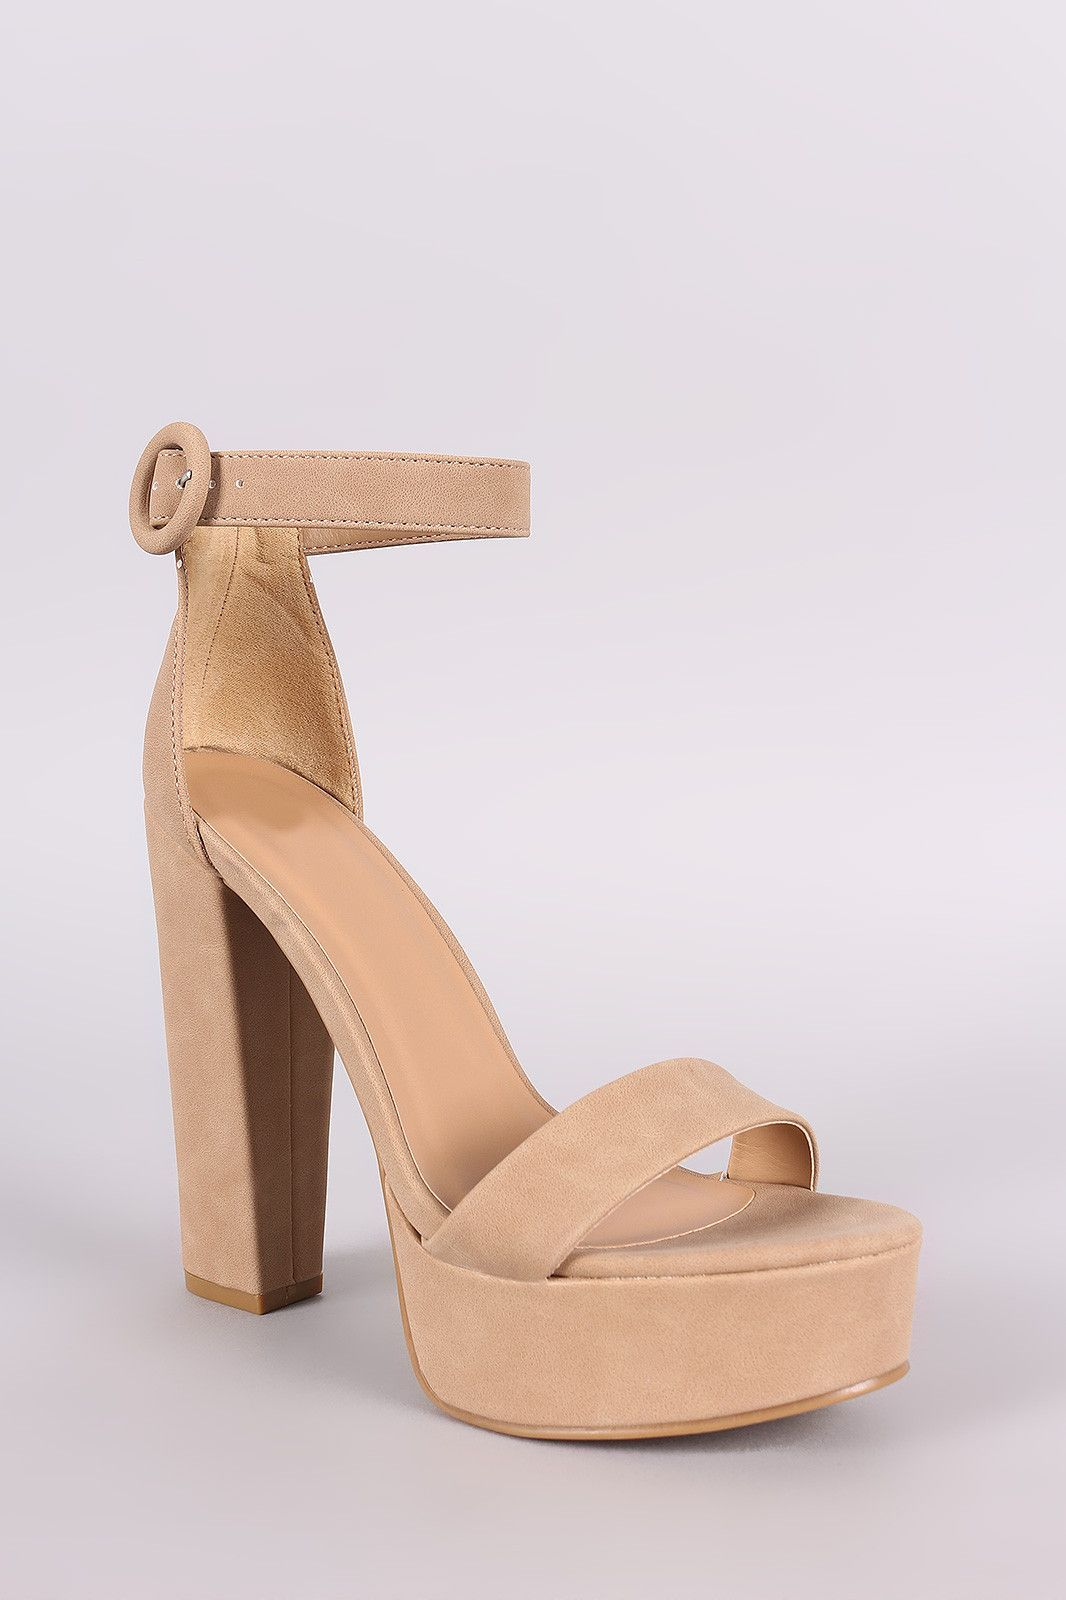 1523ad3dd67 Bamboo Nubuck Ankle Strap Platform Chunky Heel